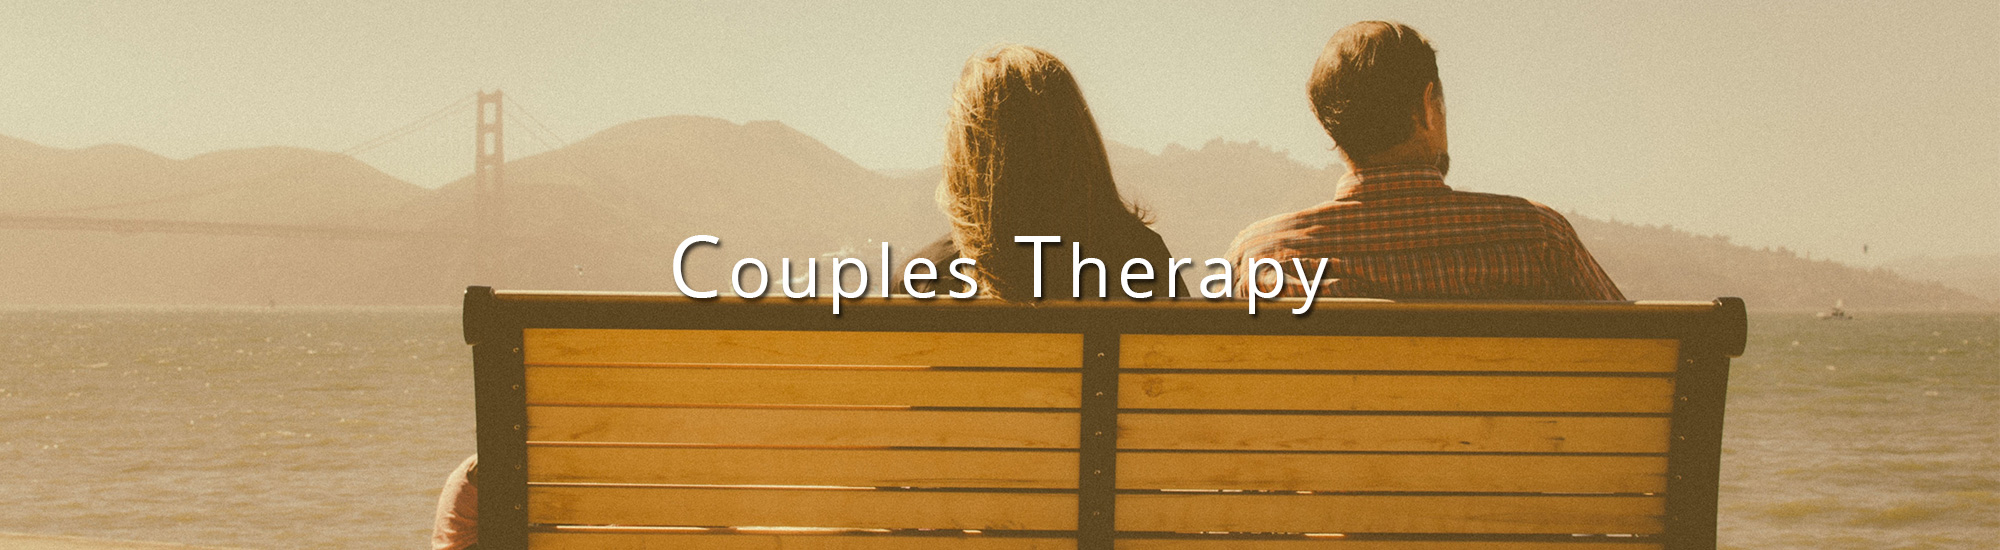 Couples Therapy in San Francisco